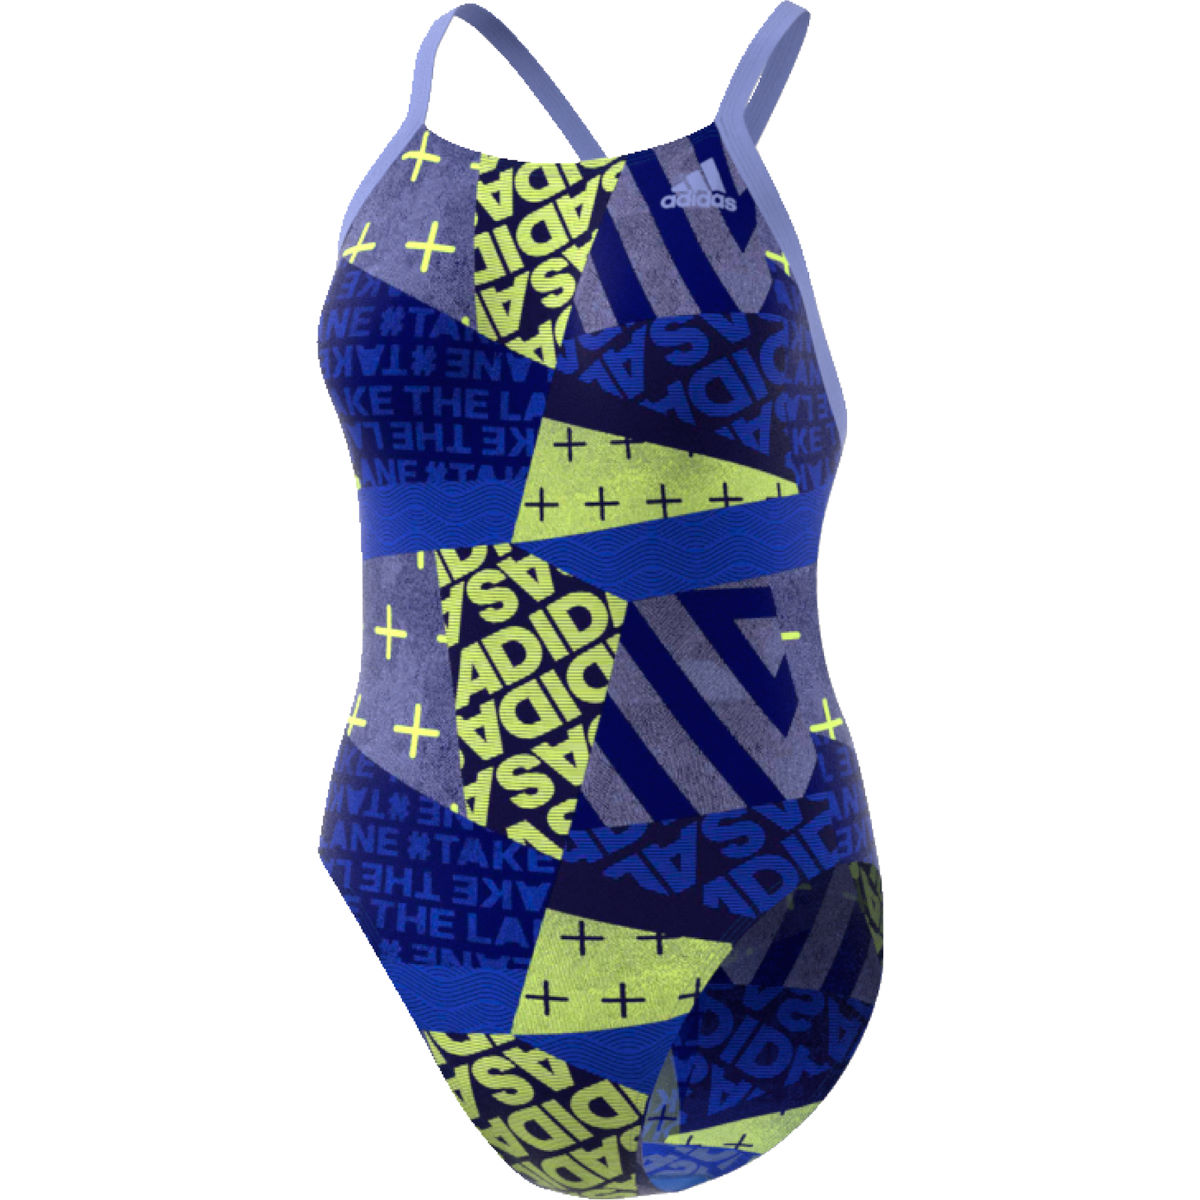 Maillot de bain Femme adidas Performance Training Allover - 34''